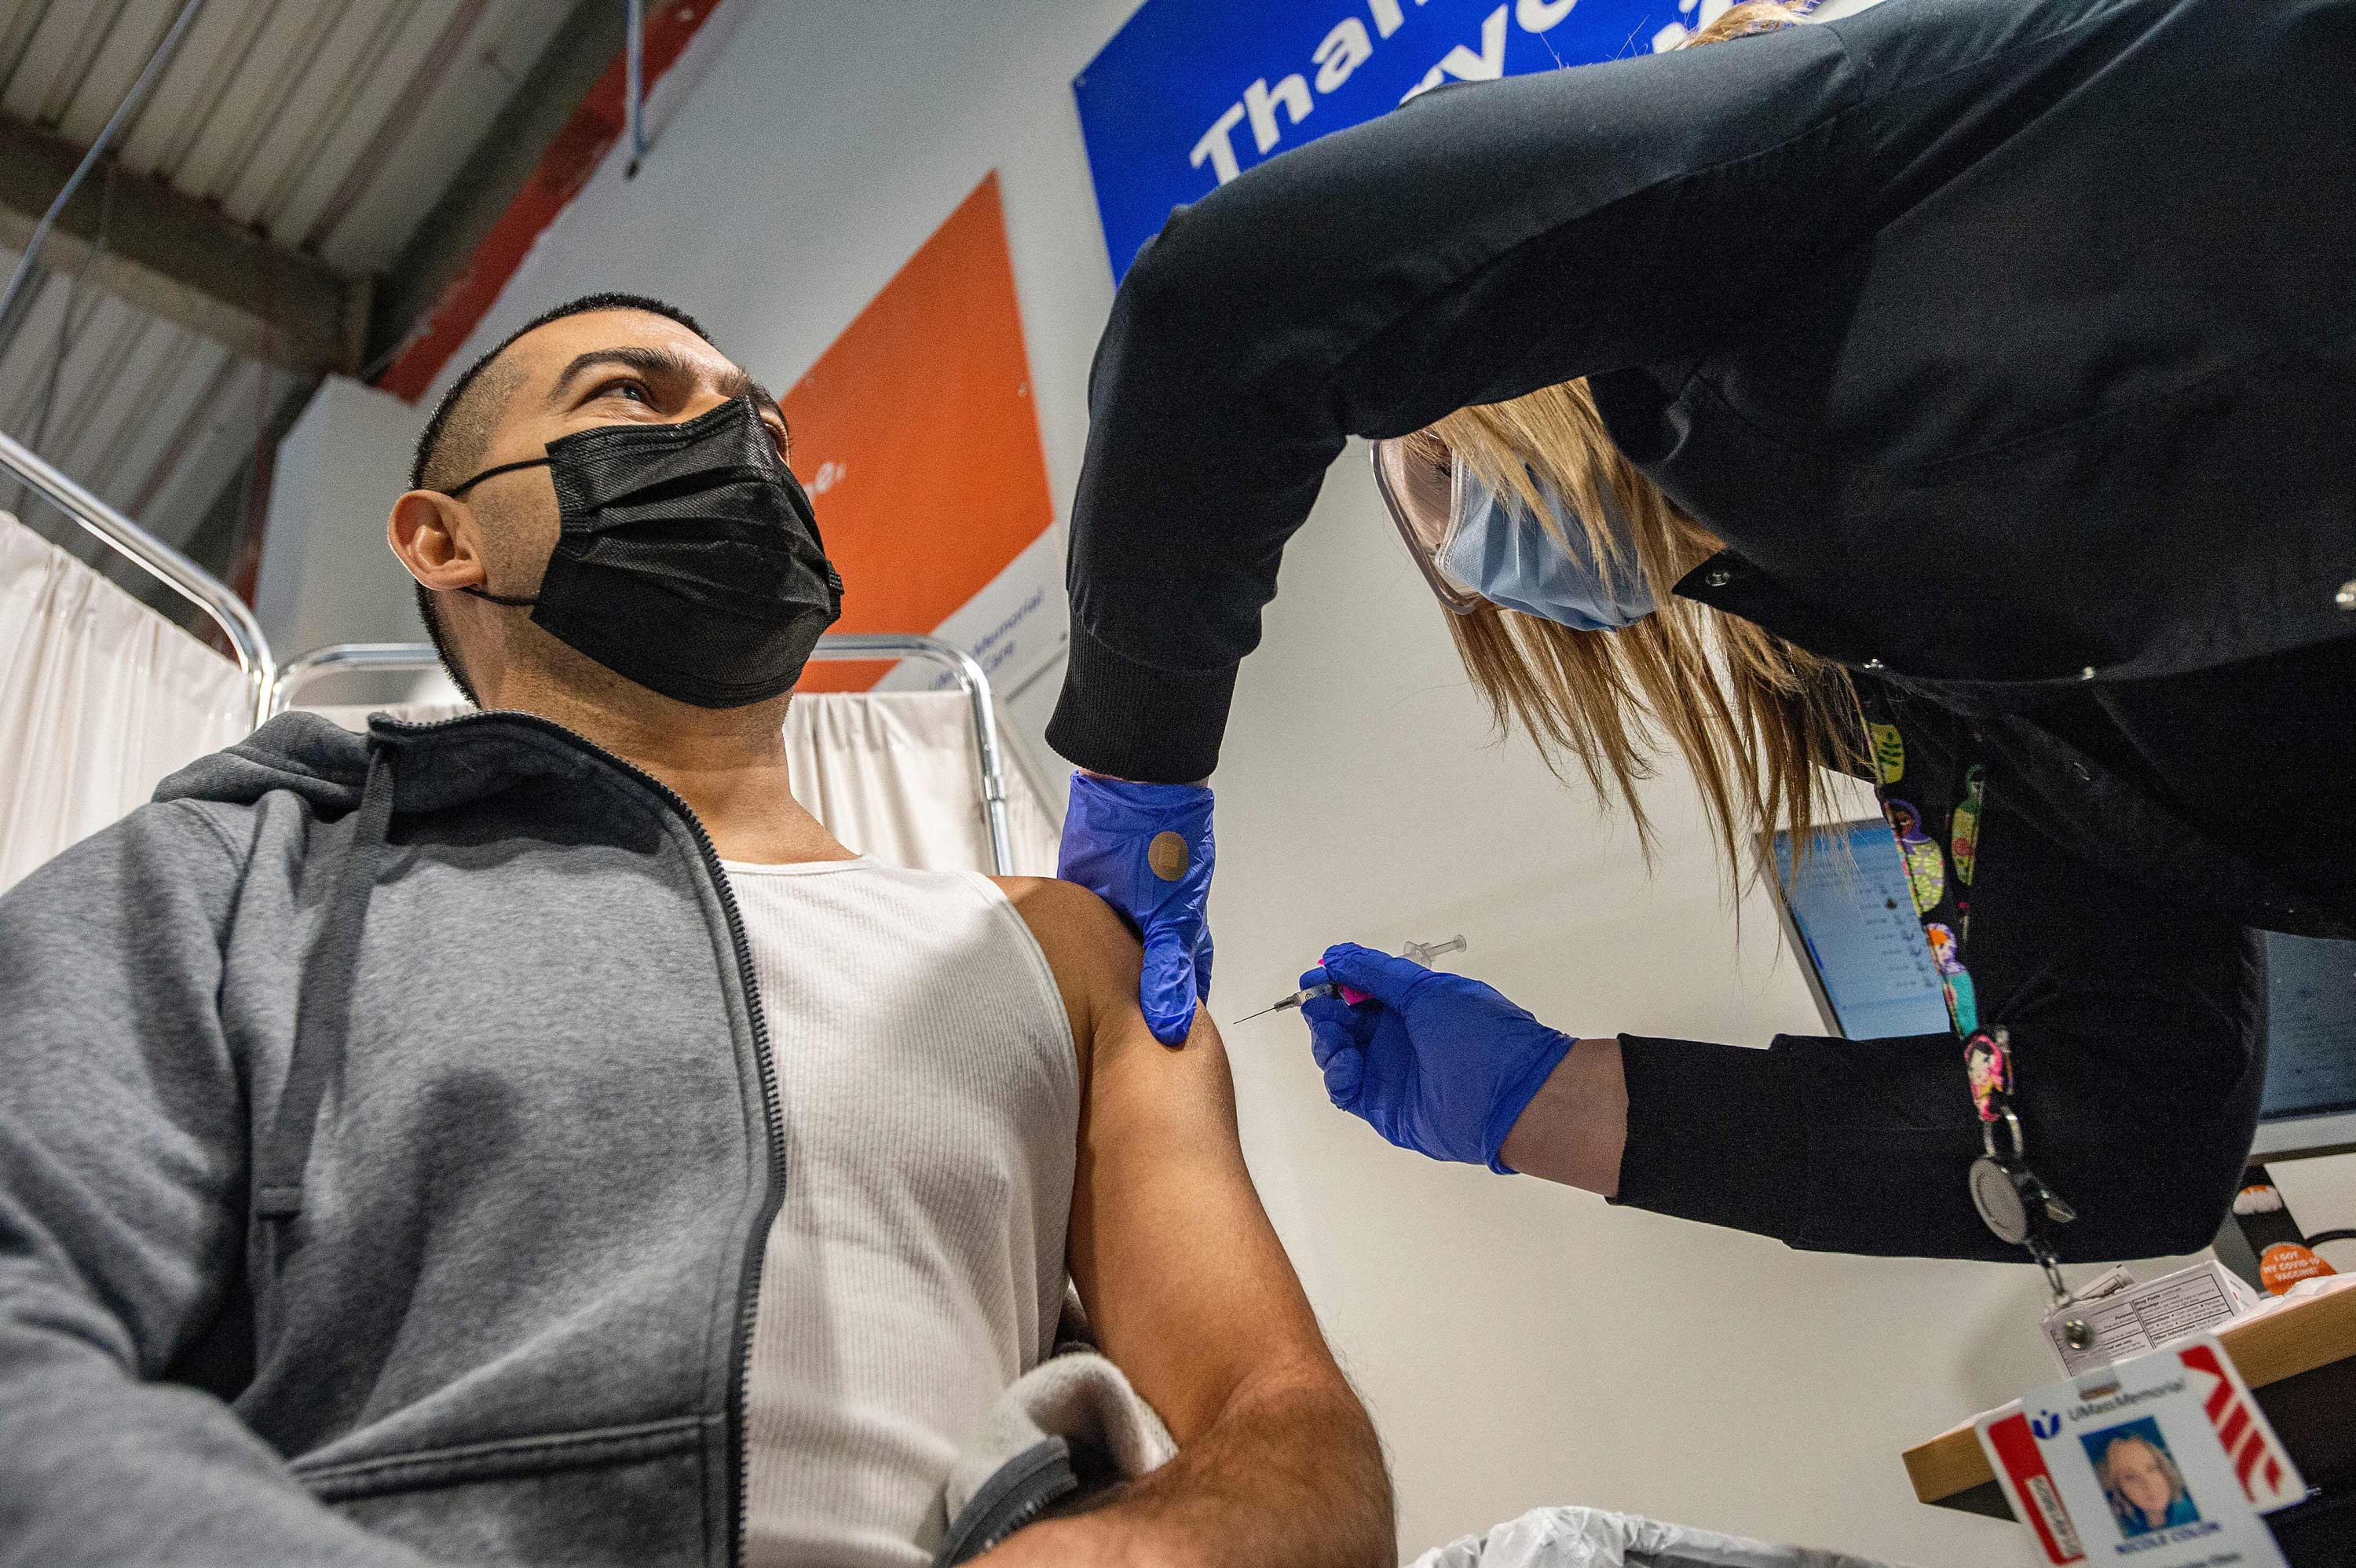 Otto Delcid is inoculated with the Pfizer-BioNTech Covid-19 vaccine by nurse Nicole Colon at the UMass Memorial Health Care COVID-19 Vaccination Center in the Mercantile Center in Worcester, Massachusetts, on April 22.